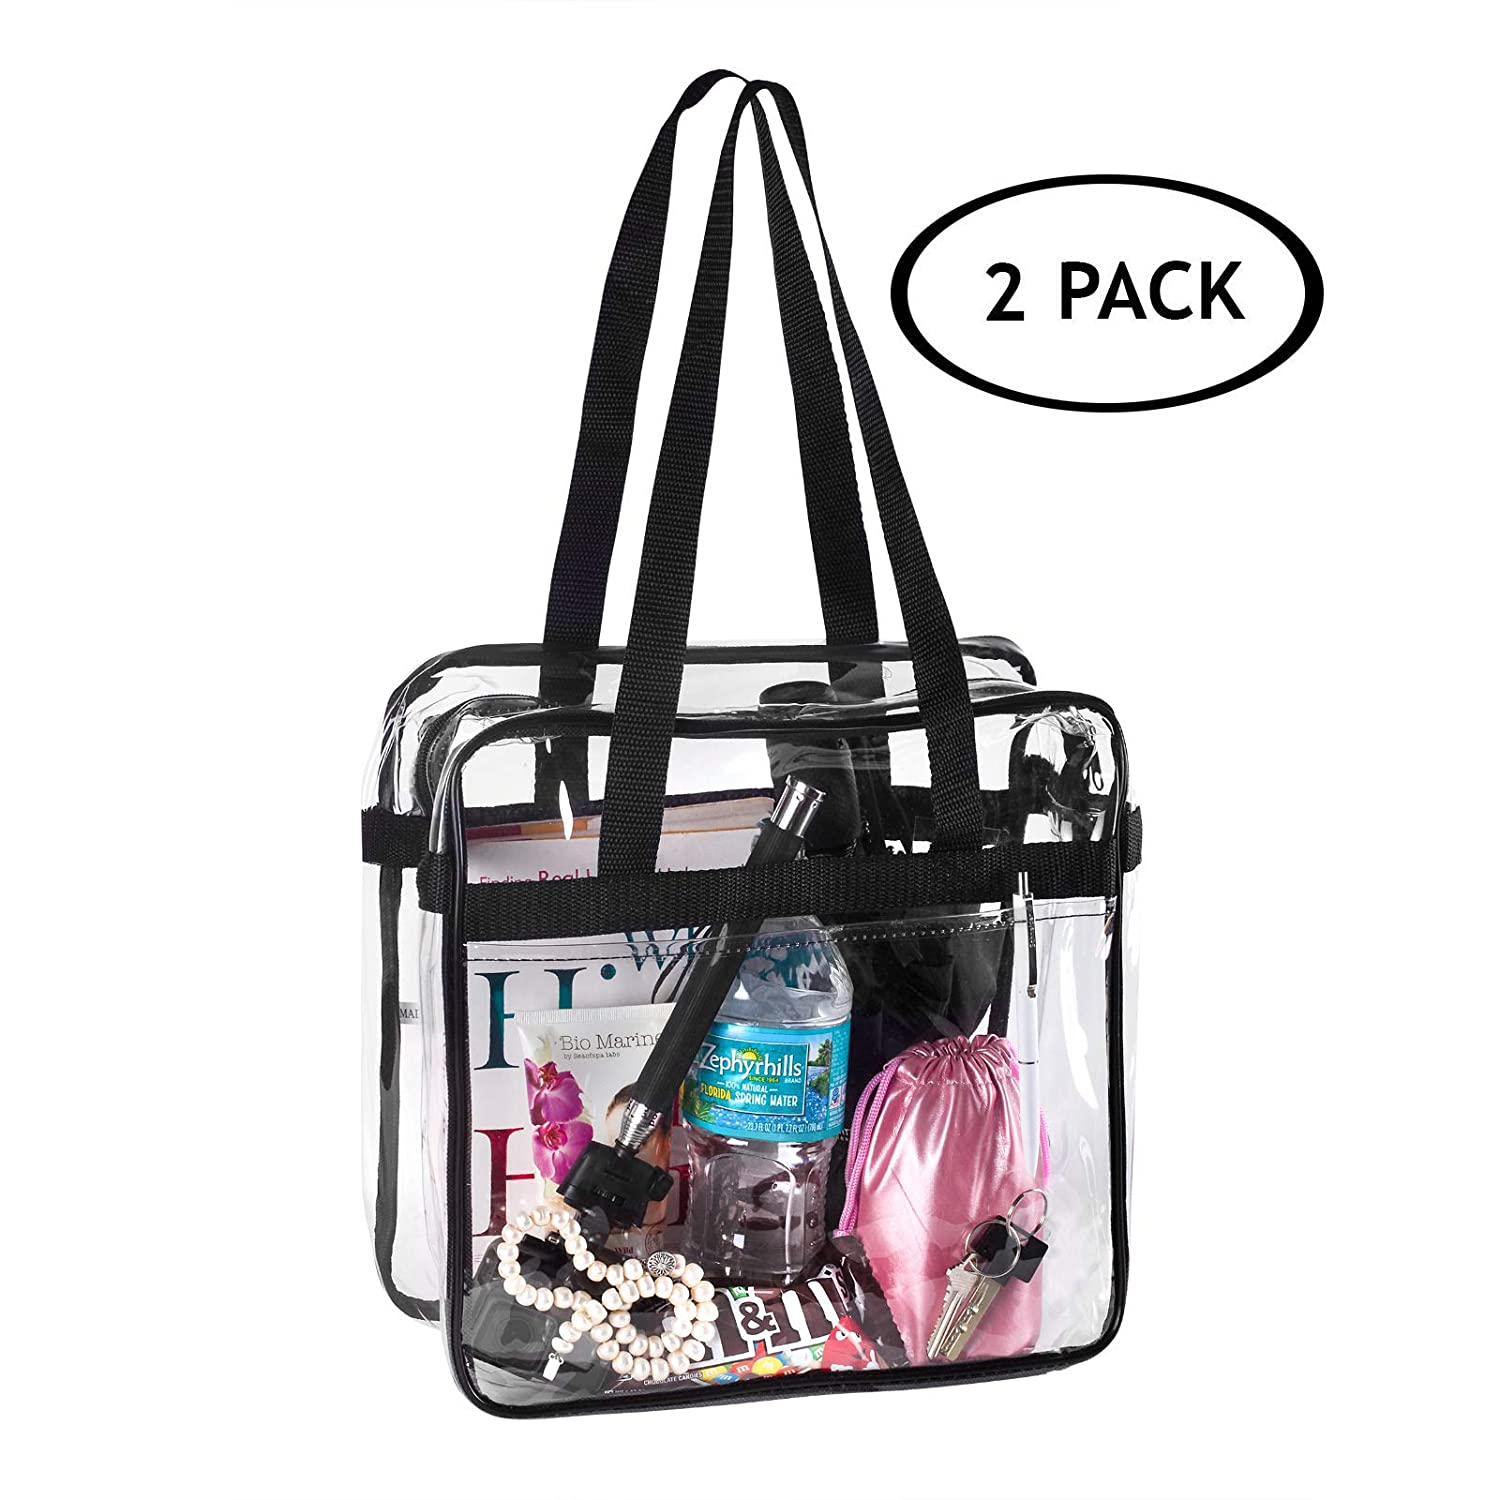 2 Clear NFL and PGA Stadium Approved Tote Bag, by Bags for Less - for, Security Travel, Sports, Outdoor Activities –12 X 12 X 6 Clear vinyl body with Trim Budget Bags